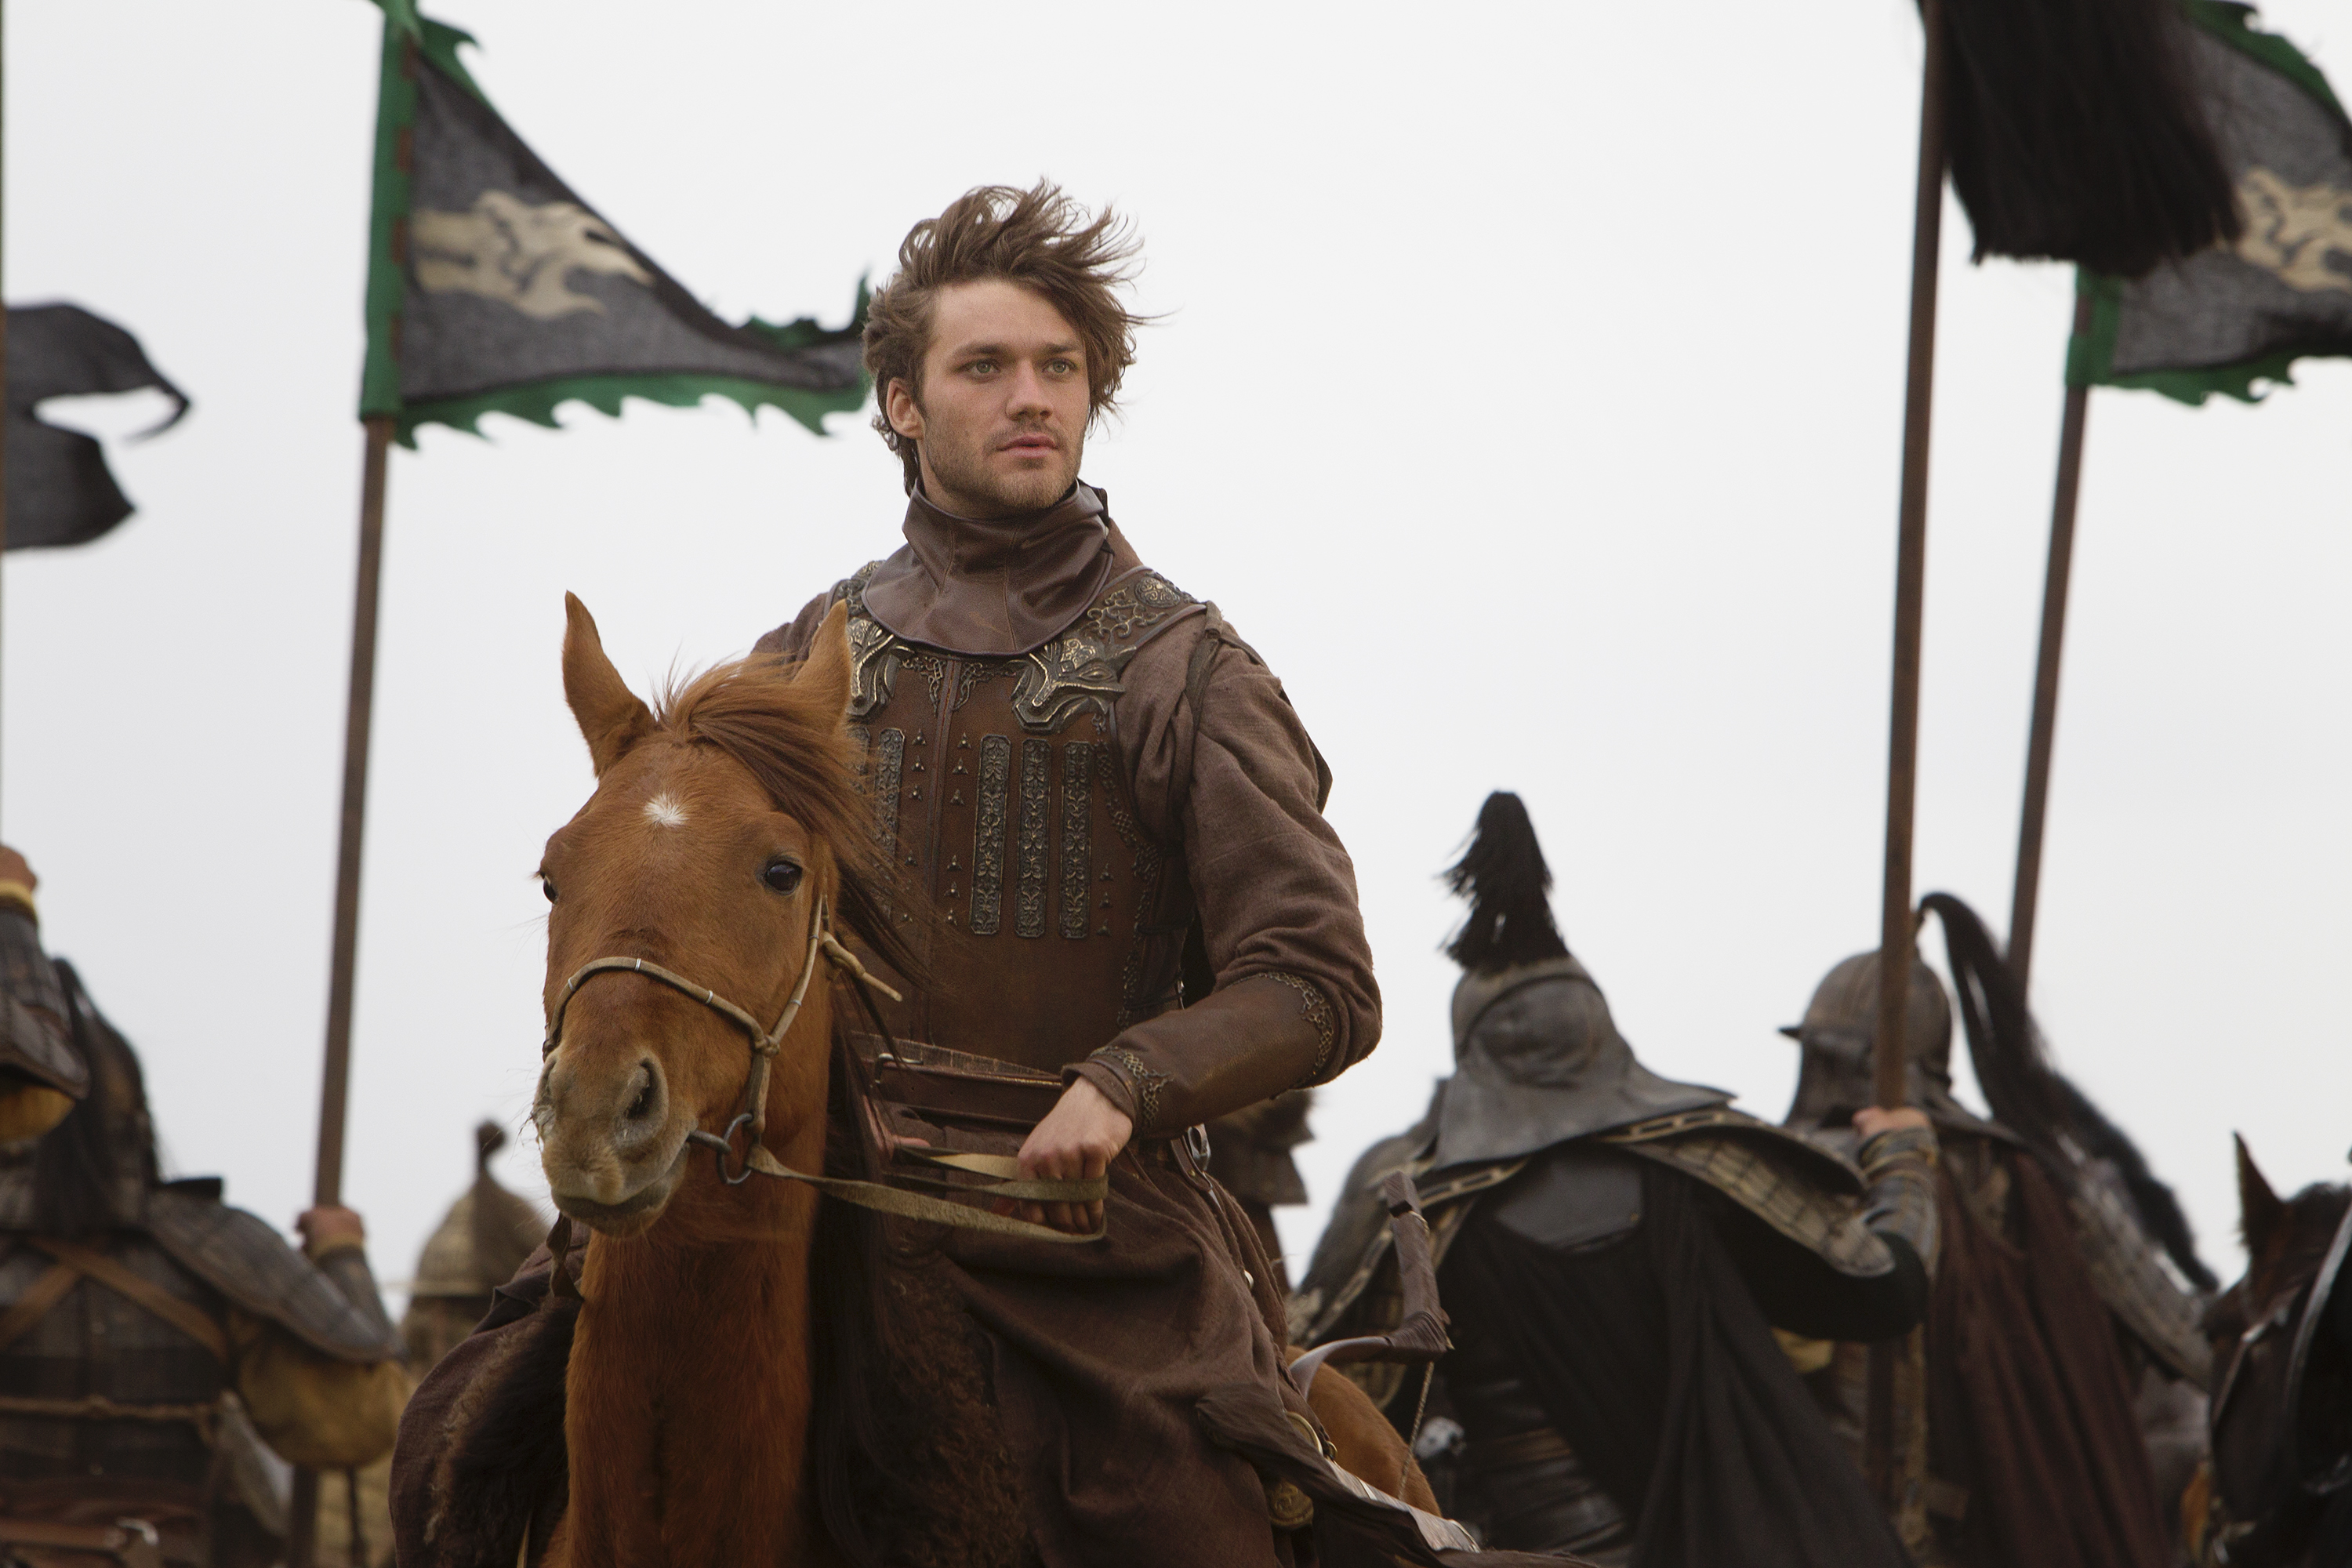 Is 'Marco Polo' Historically Accurate? Netflix's Expensive